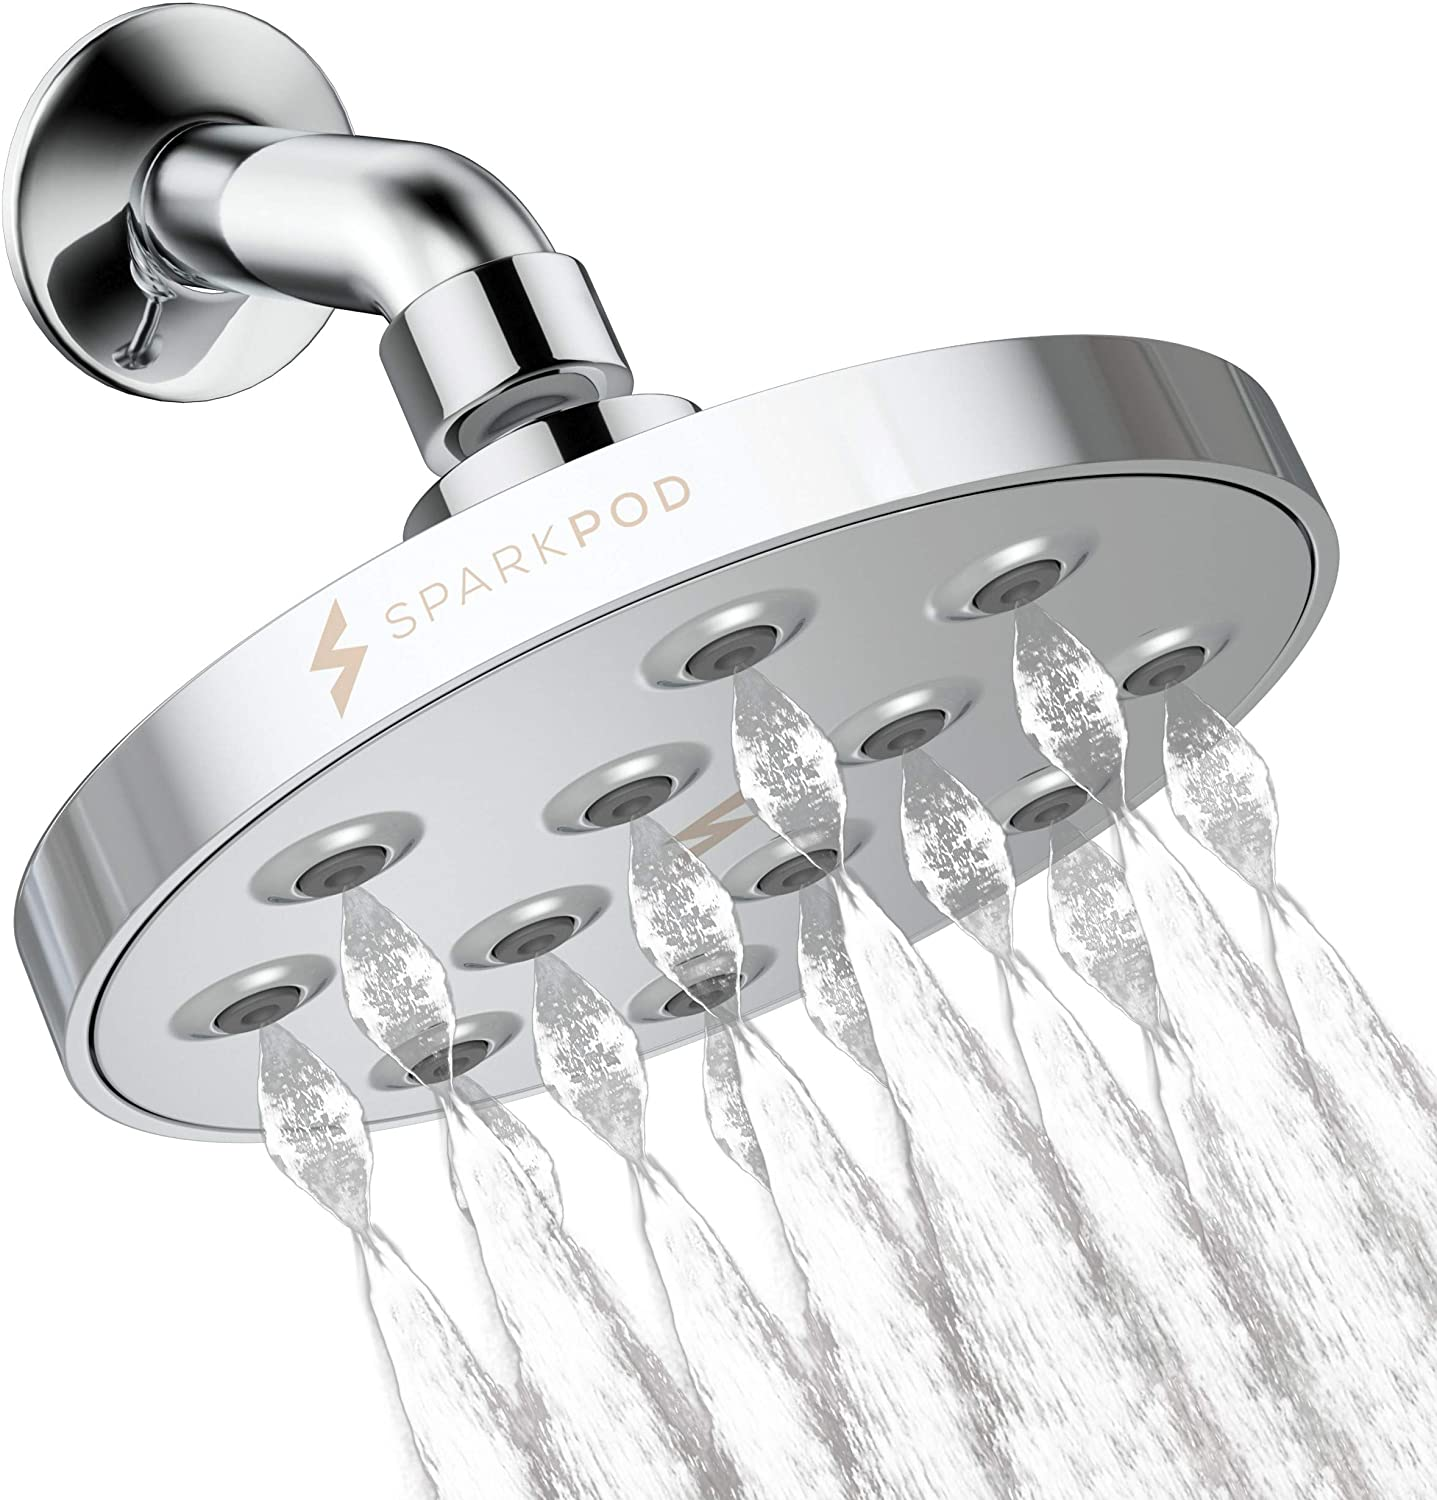 SparkPod Power Rain Shower Head - Luxury Modern Chrome Look - Rainfall Shower Head - Easy Tool Free Installation - The Perfect Adjustable High Pressure Shower Heads